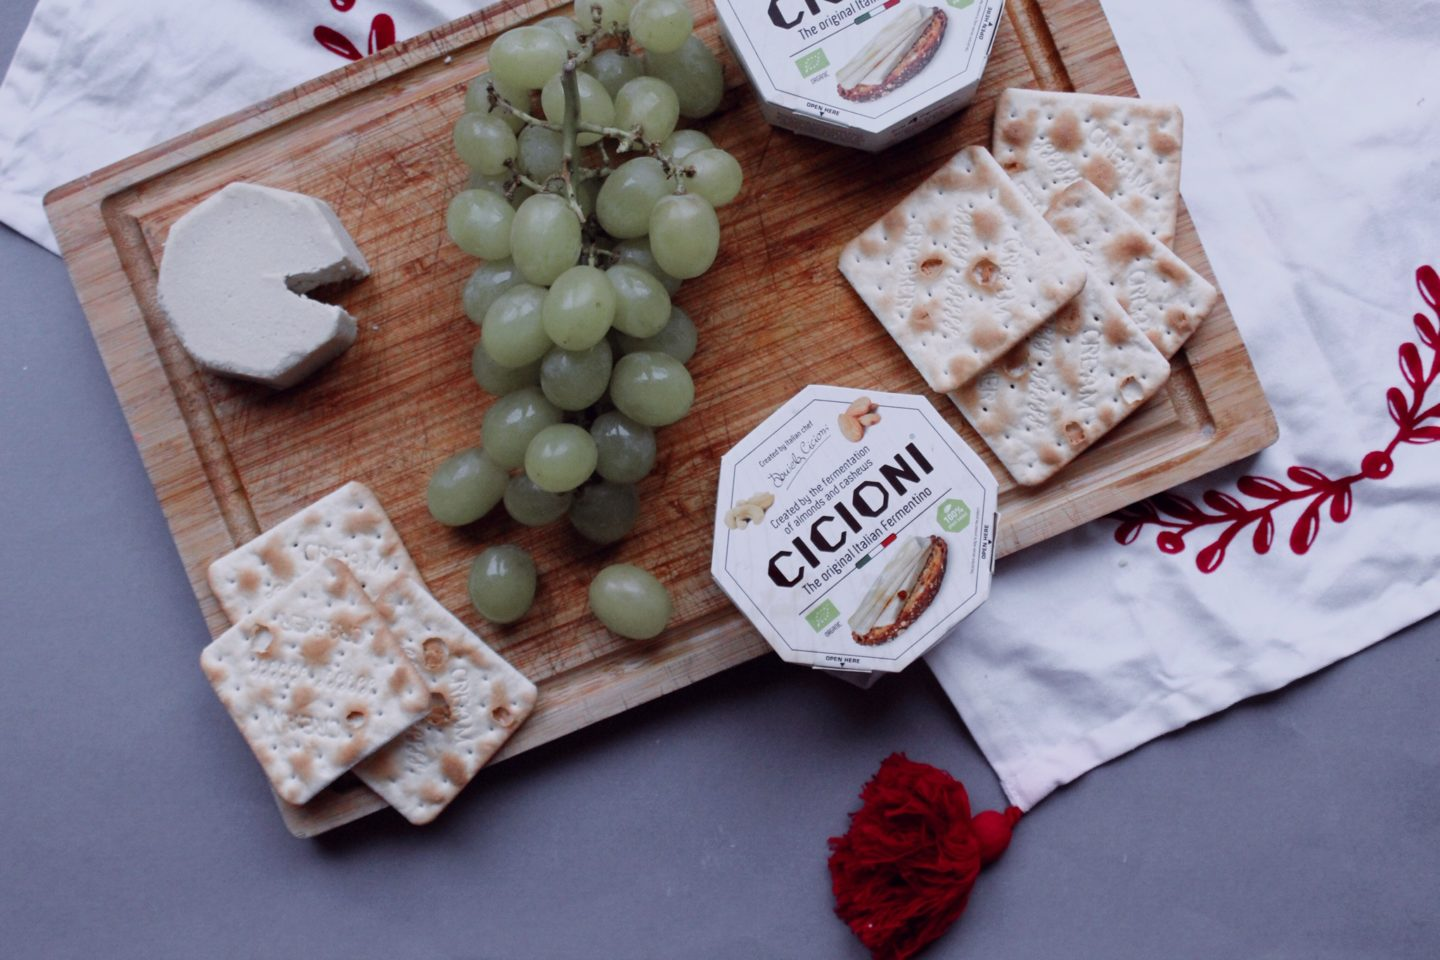 vegan cheeseboard with cicioni